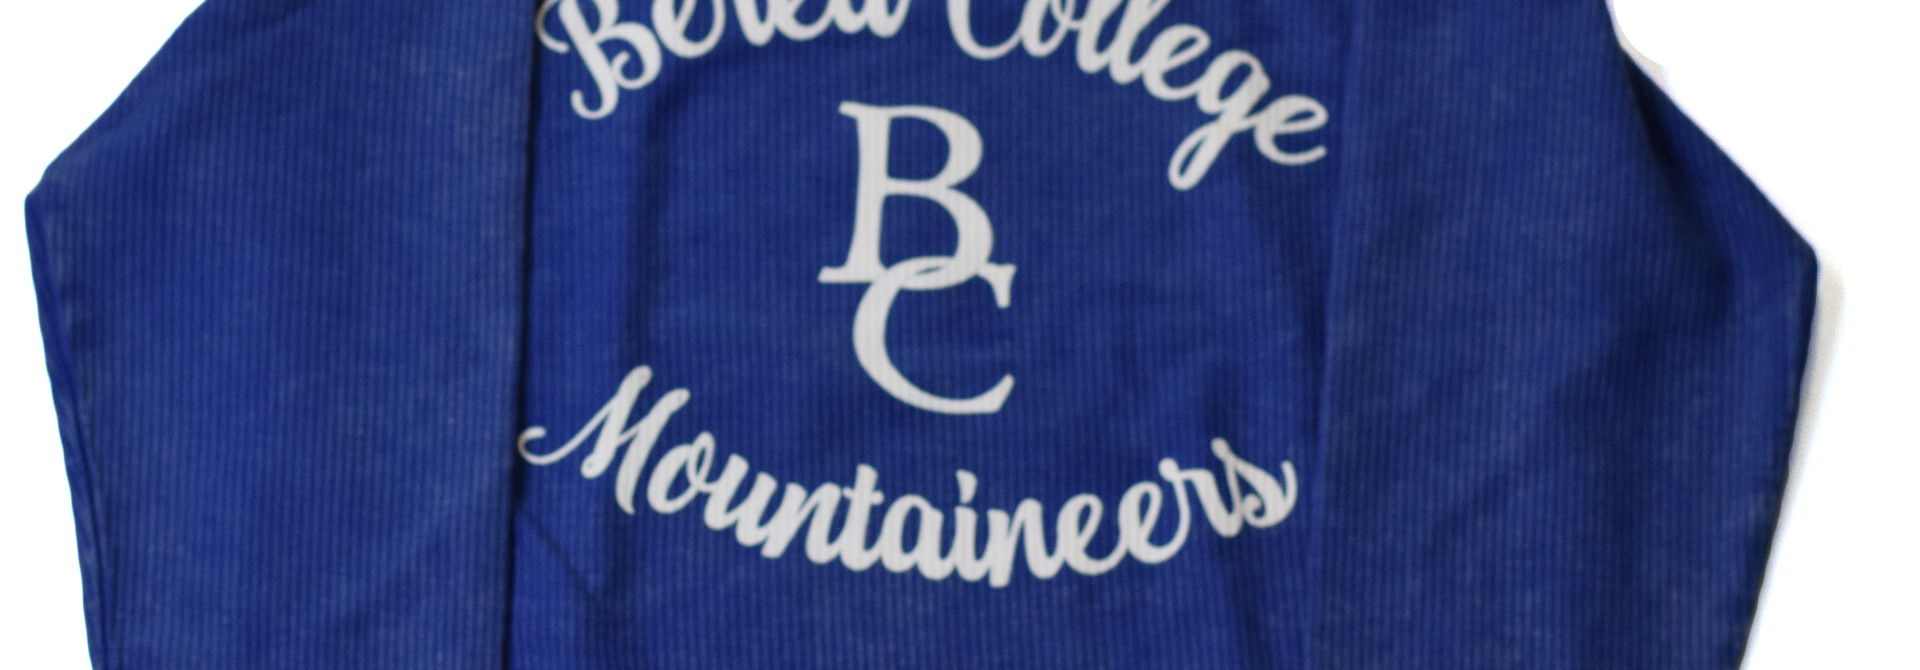 Berea College BC Mountaineers Crewneck